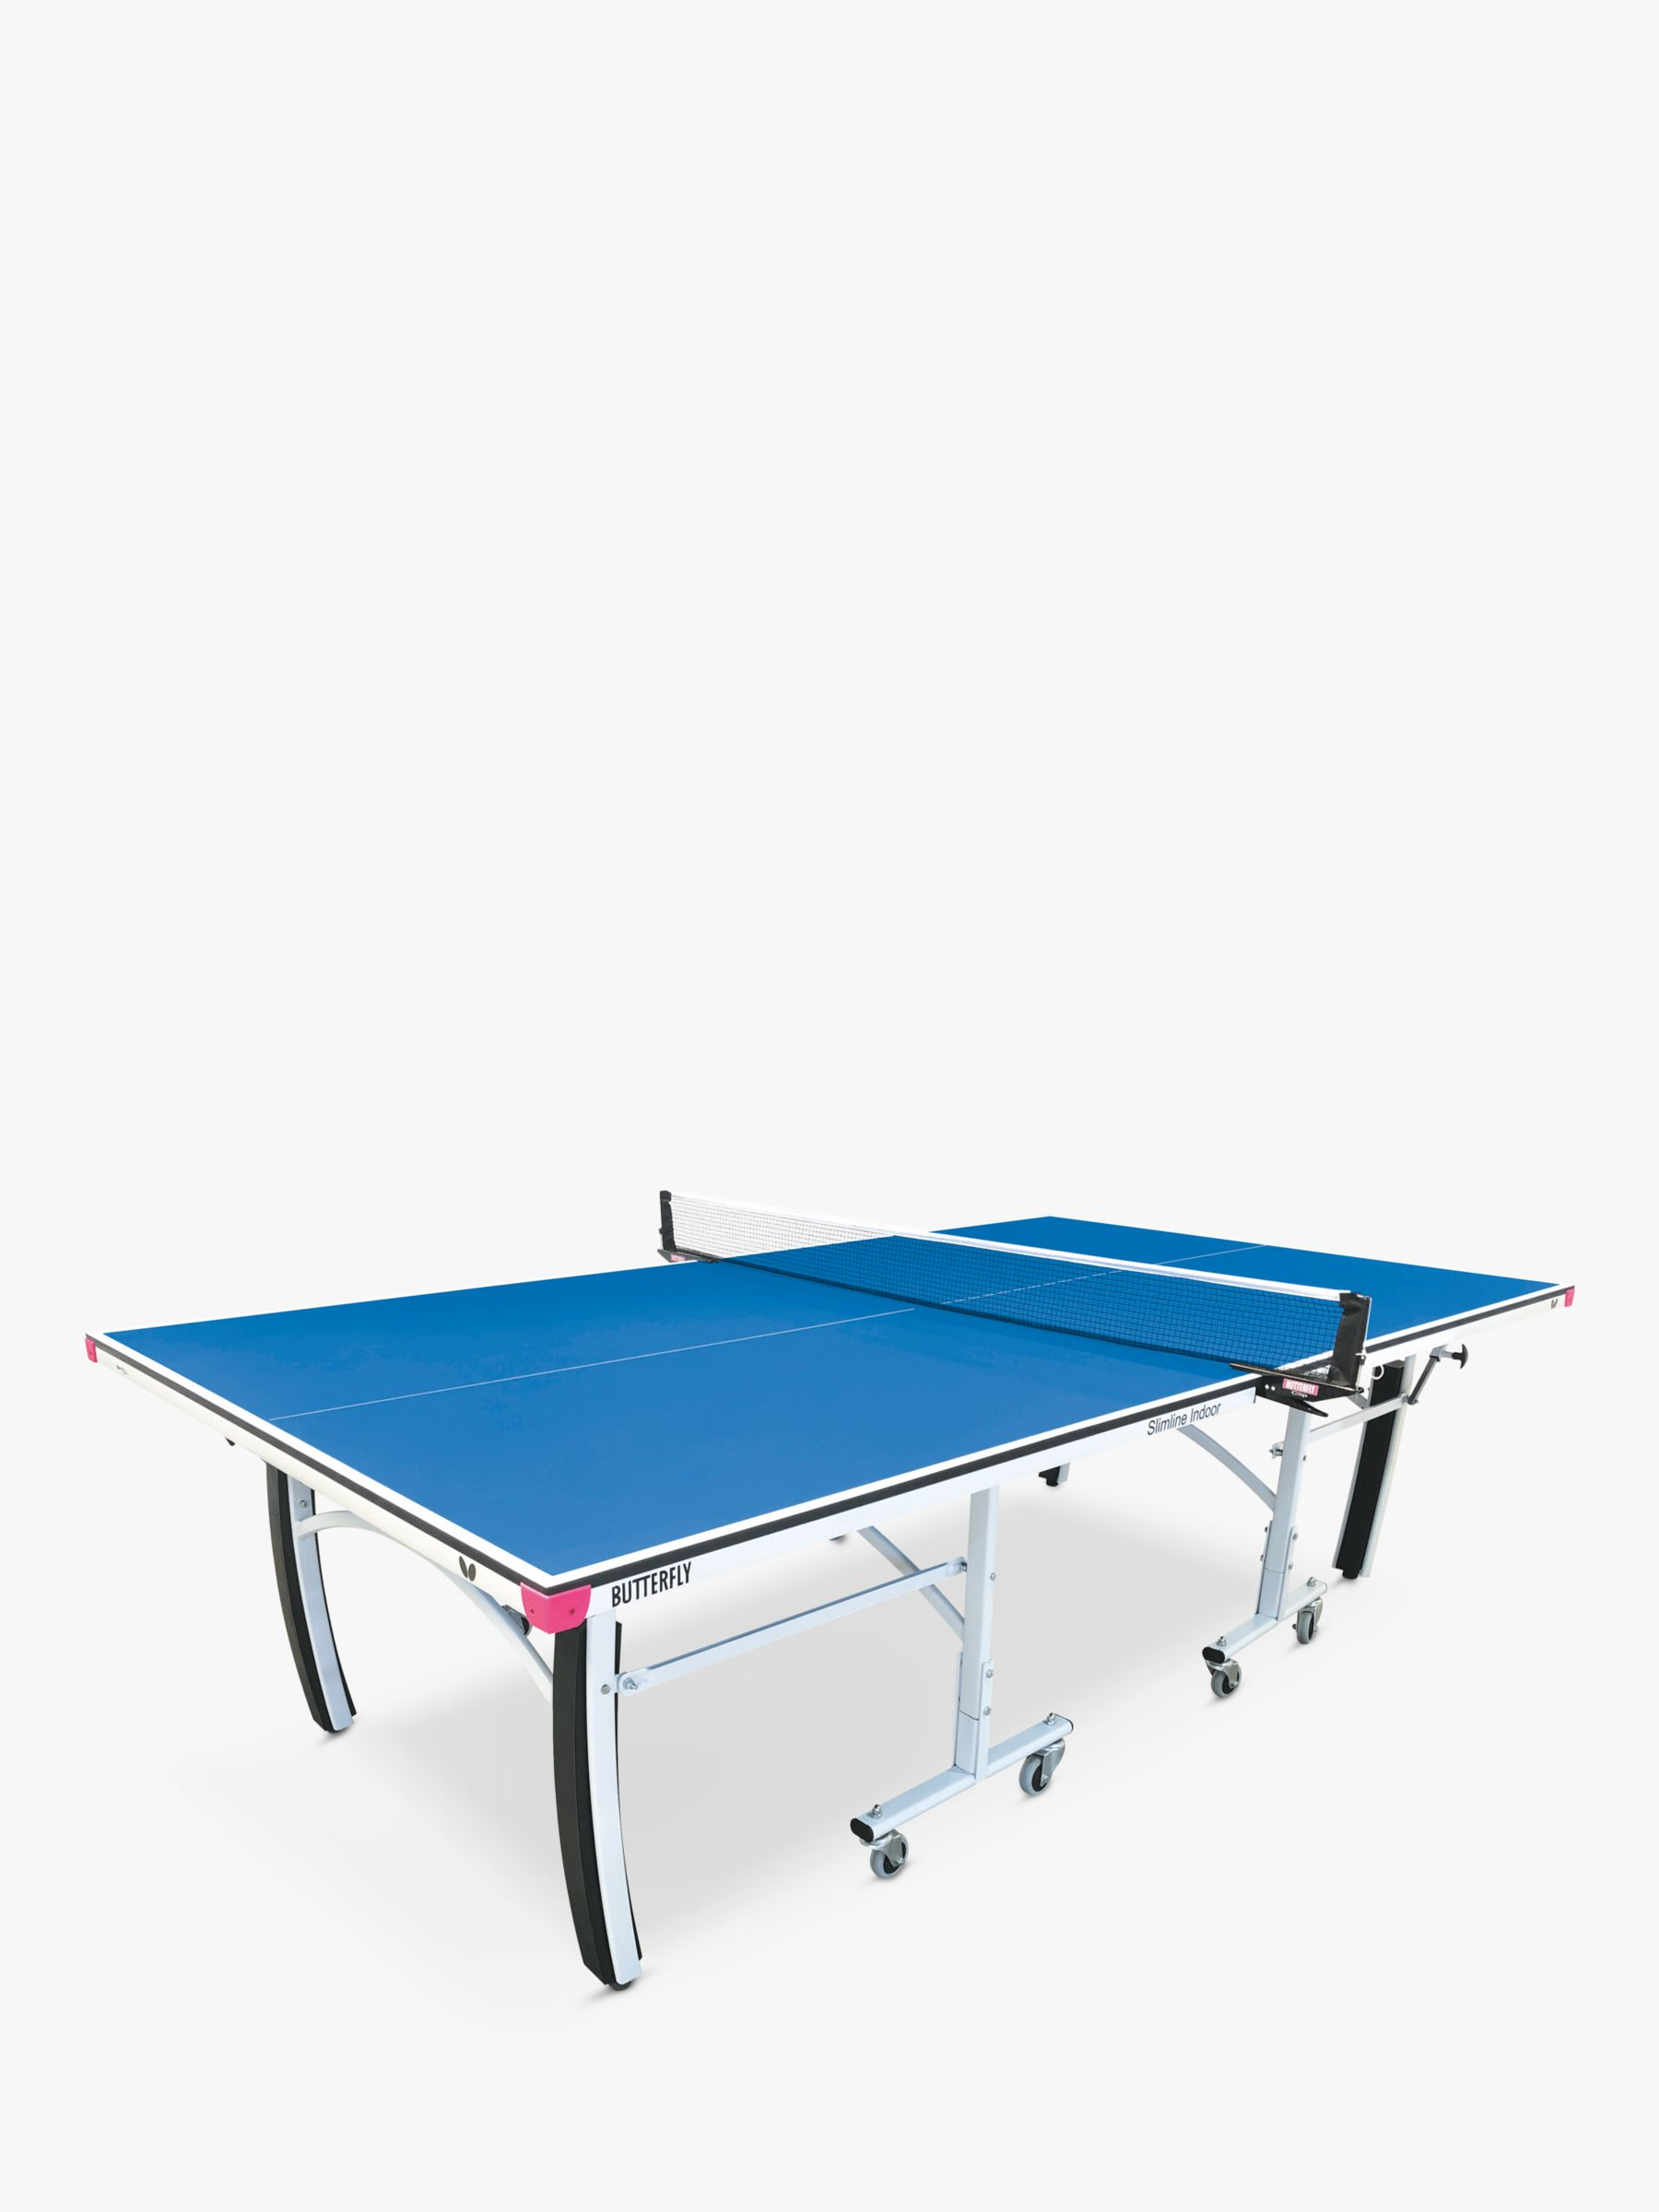 Butterfly Butterfly Slimline Indoor Table Tennis Table, Green